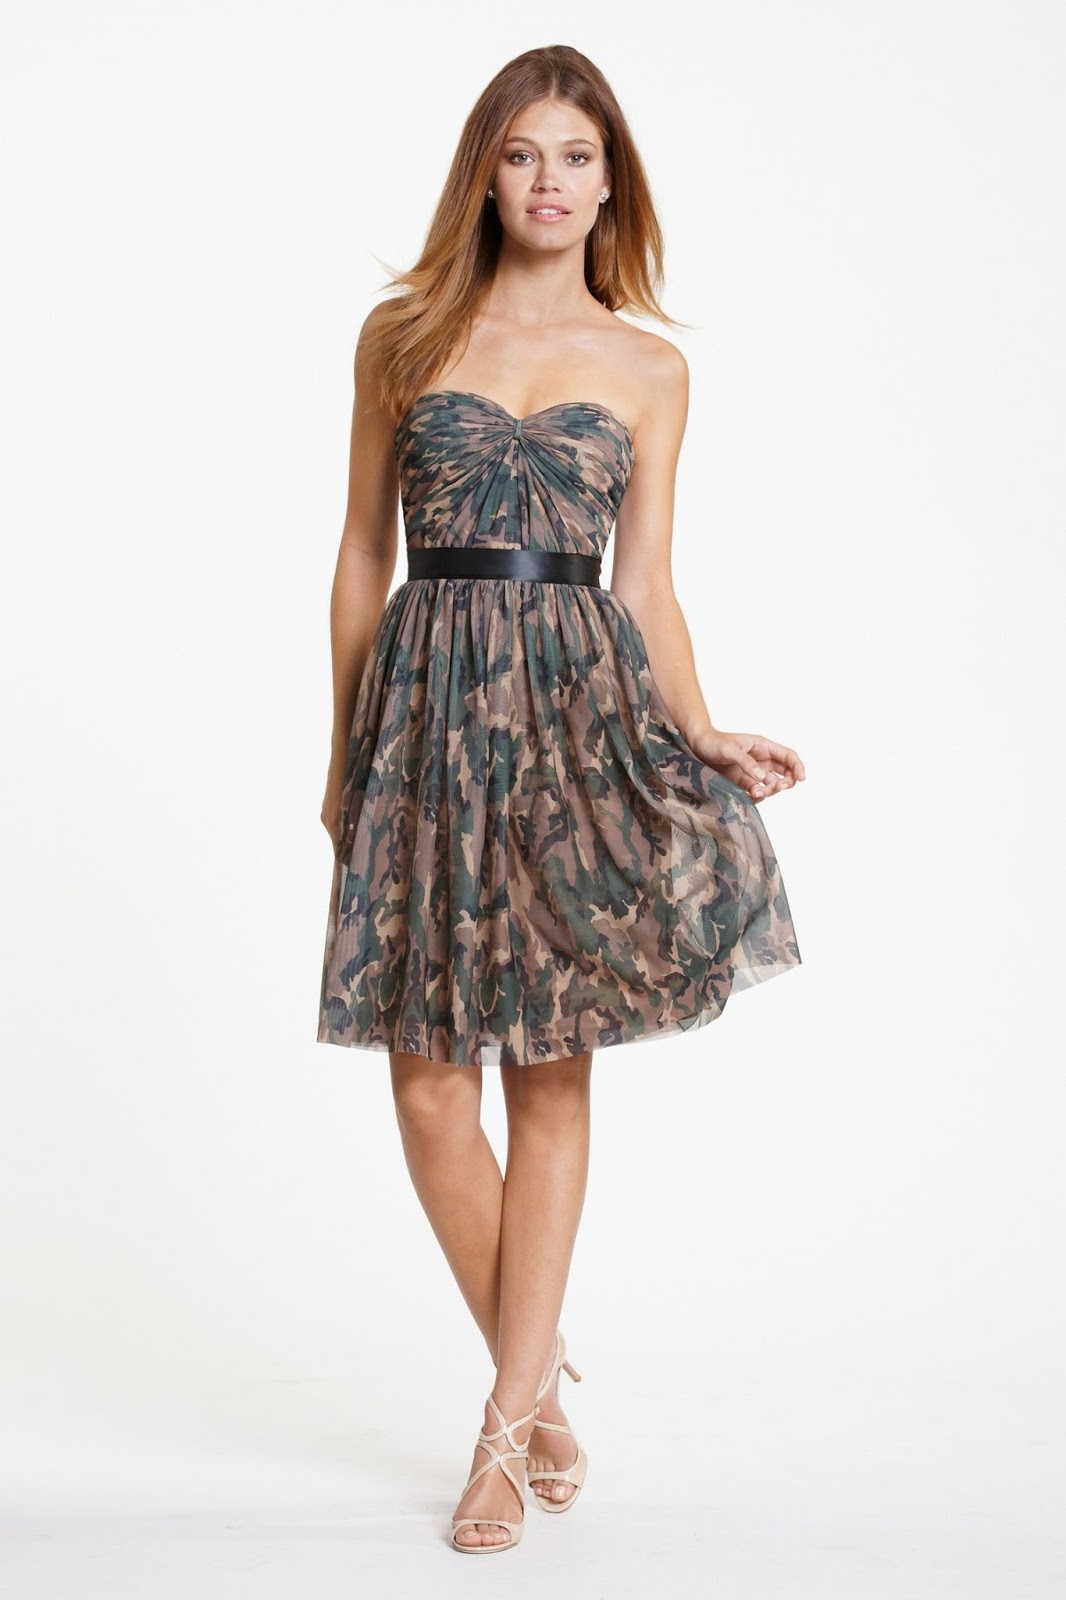 Cheap Camouflage Dresses For Women Fashion Dresses